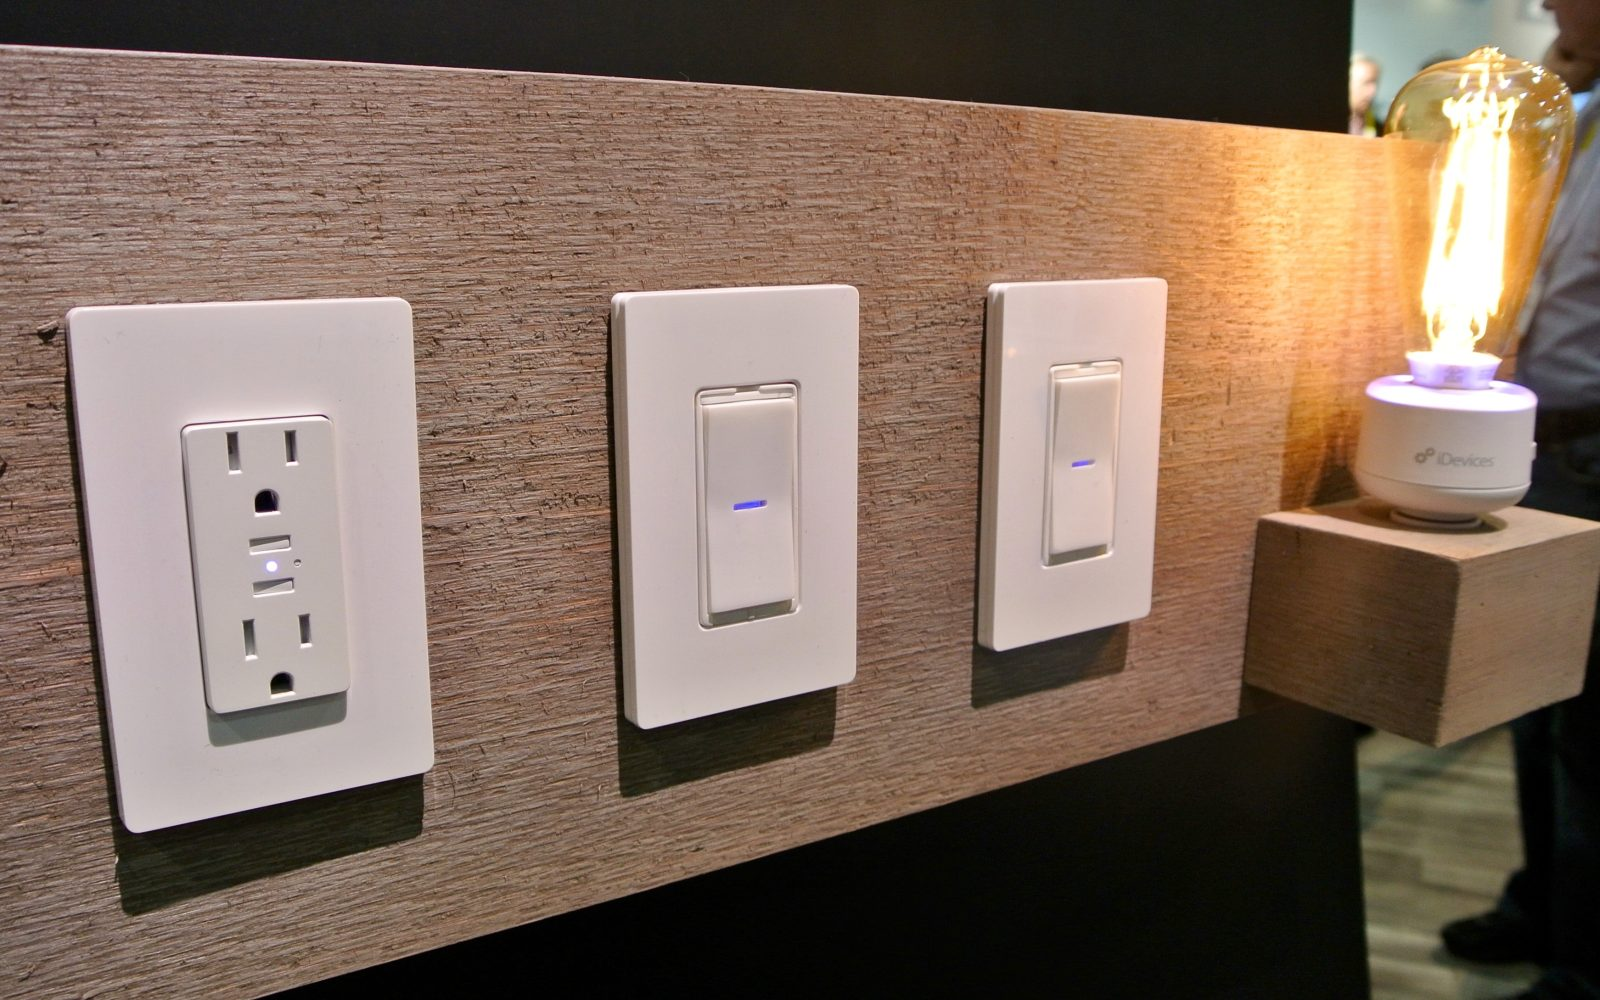 Idevices adds new siri controlled wall outlets switches and light idevices adds new siri controlled wall outlets switches and light sockets to its homekit lineup aloadofball Image collections